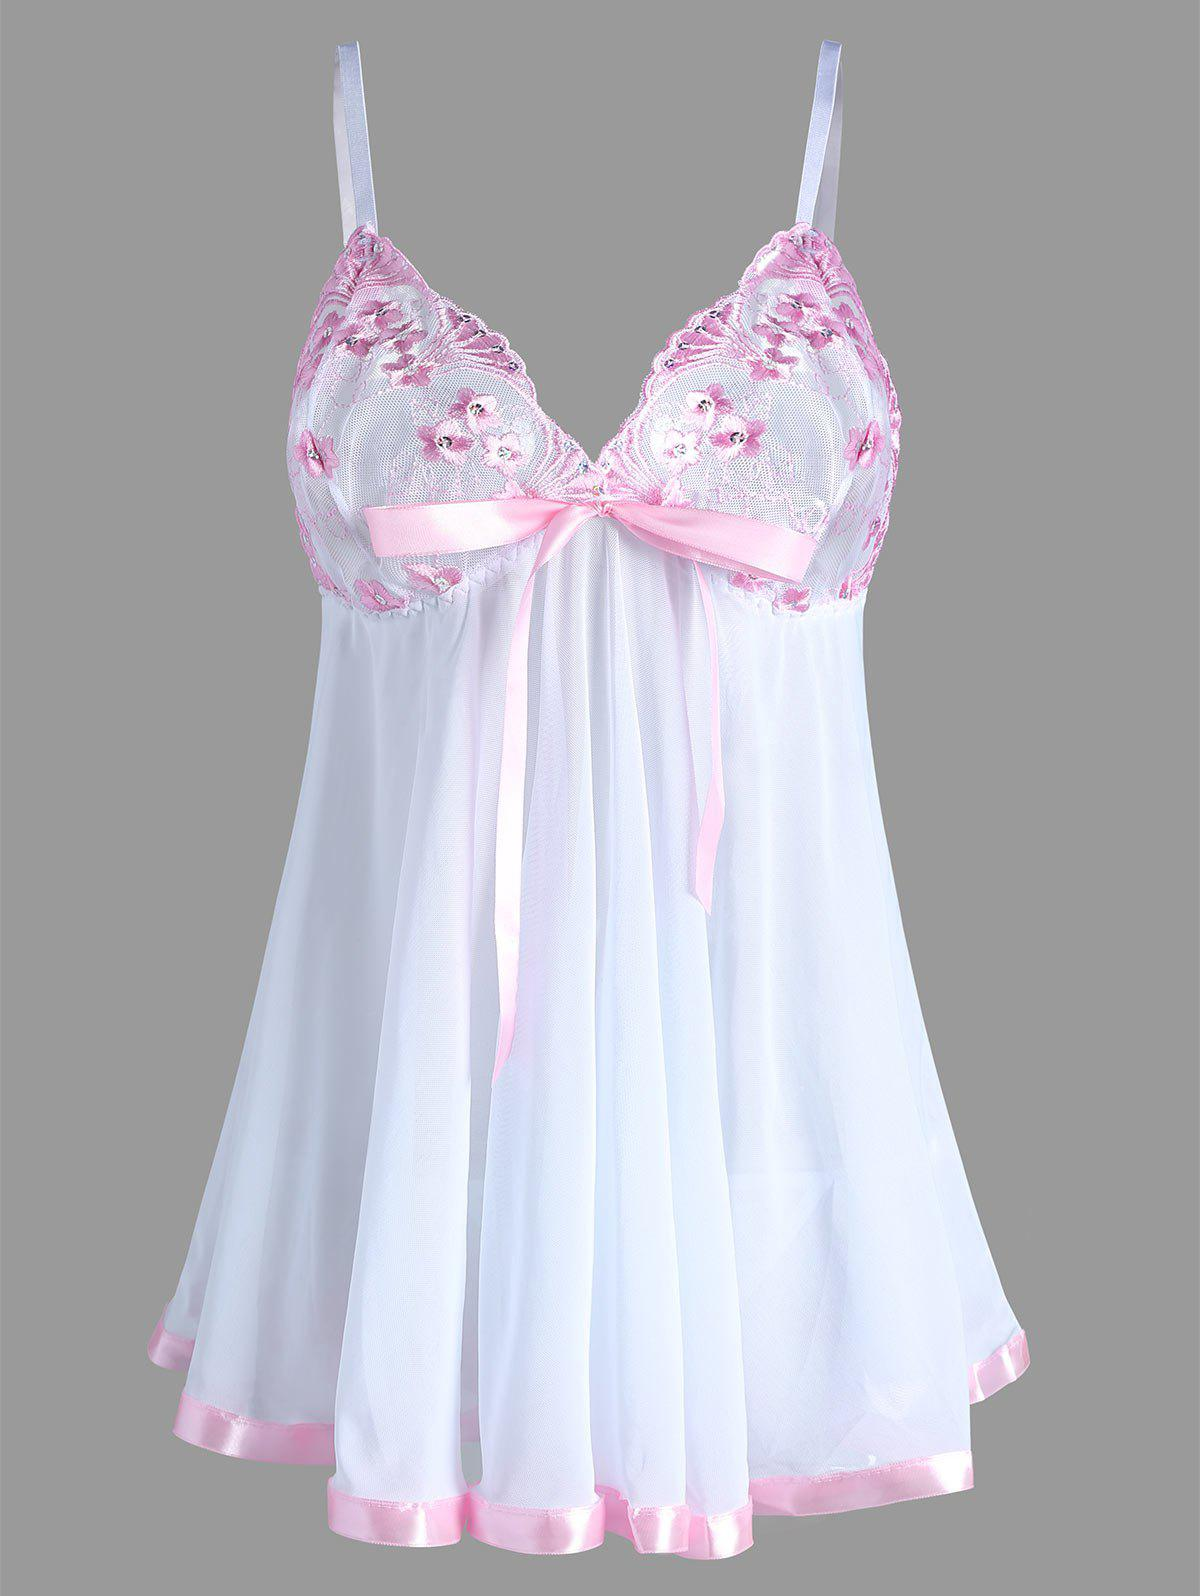 Embroidered Plus Size Mesh Lingerie Bodydoll Slip DressWOMEN<br><br>Size: 6XL; Color: WHITE; Material: Nylon,Spandex; Pattern Type: Patchwork; Embellishment: Lace,Ribbons,Sequins; Weight: 0.1600kg; Package Contents: 1 x Dress  1 x T Back;